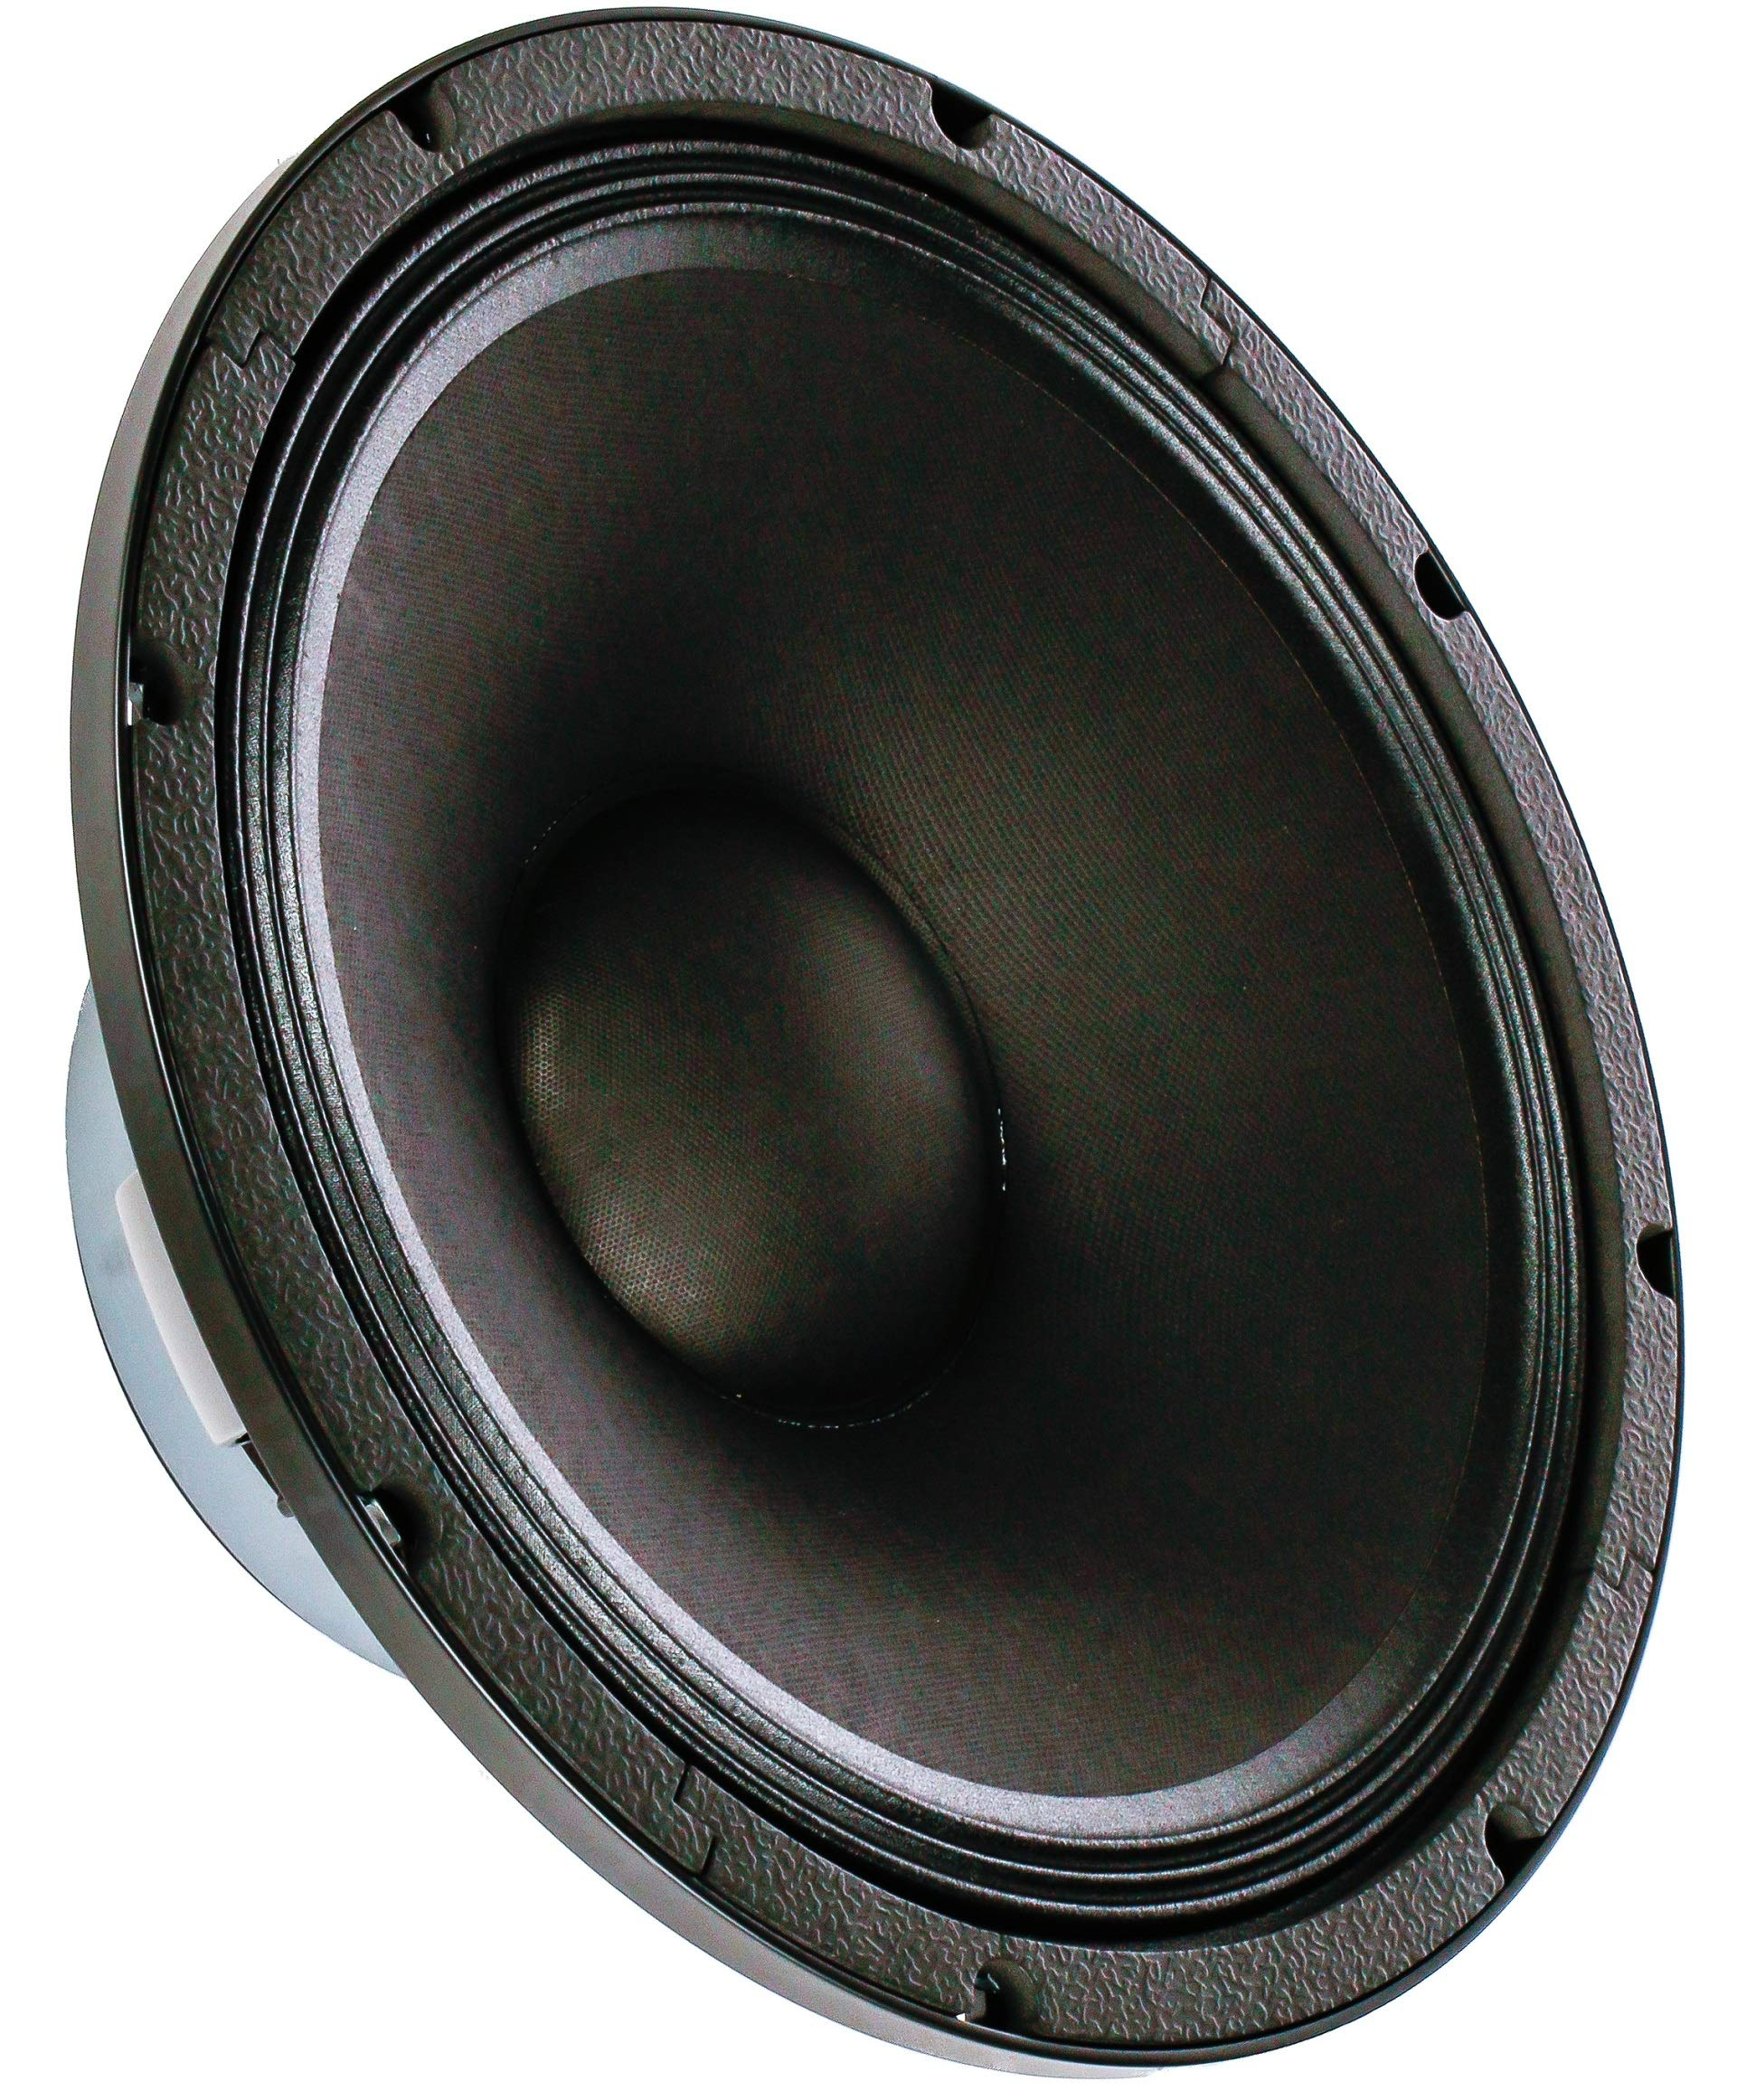 Alphasonik 15'' Flagship Series 1400 Watts Raw Sub Woofer Speaker Cast Aluminum Basket Driver for Pro Audio PA DJ Cabinets Subwoofer with High Handling Power Extremely Clear and Loud - FW1532